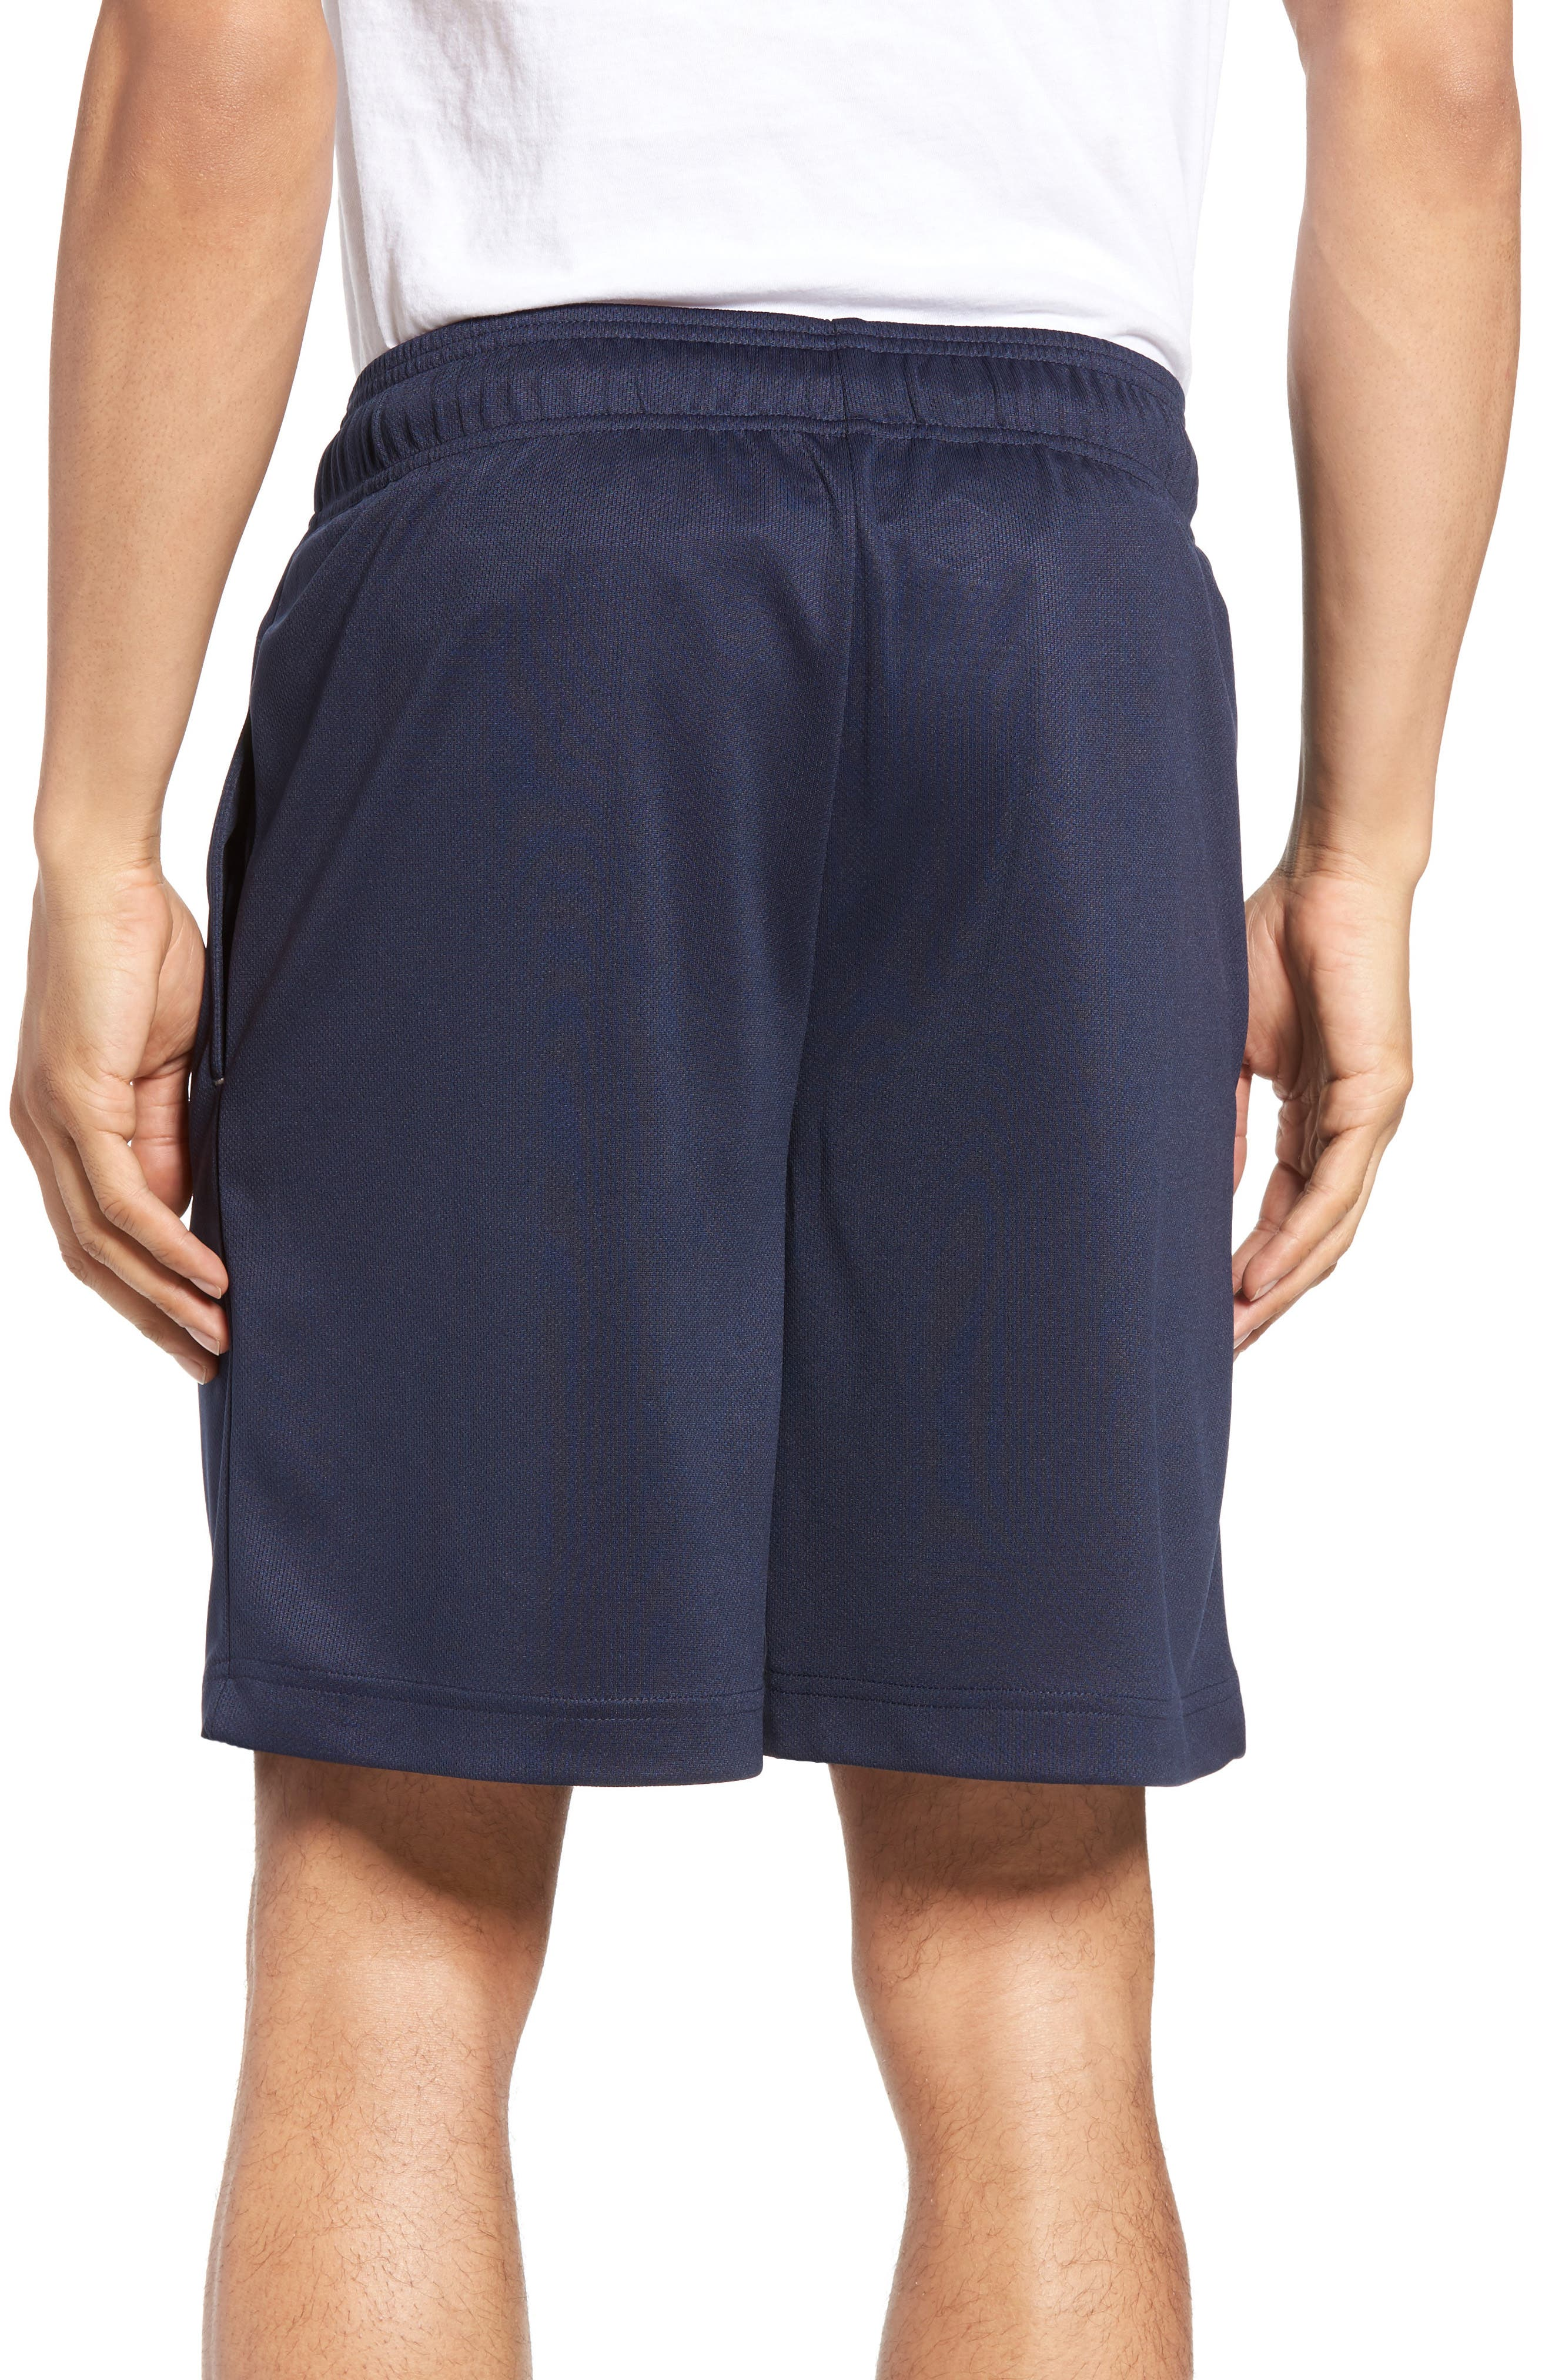 Work Out Lounge Shorts,                             Alternate thumbnail 2, color,                             Navy